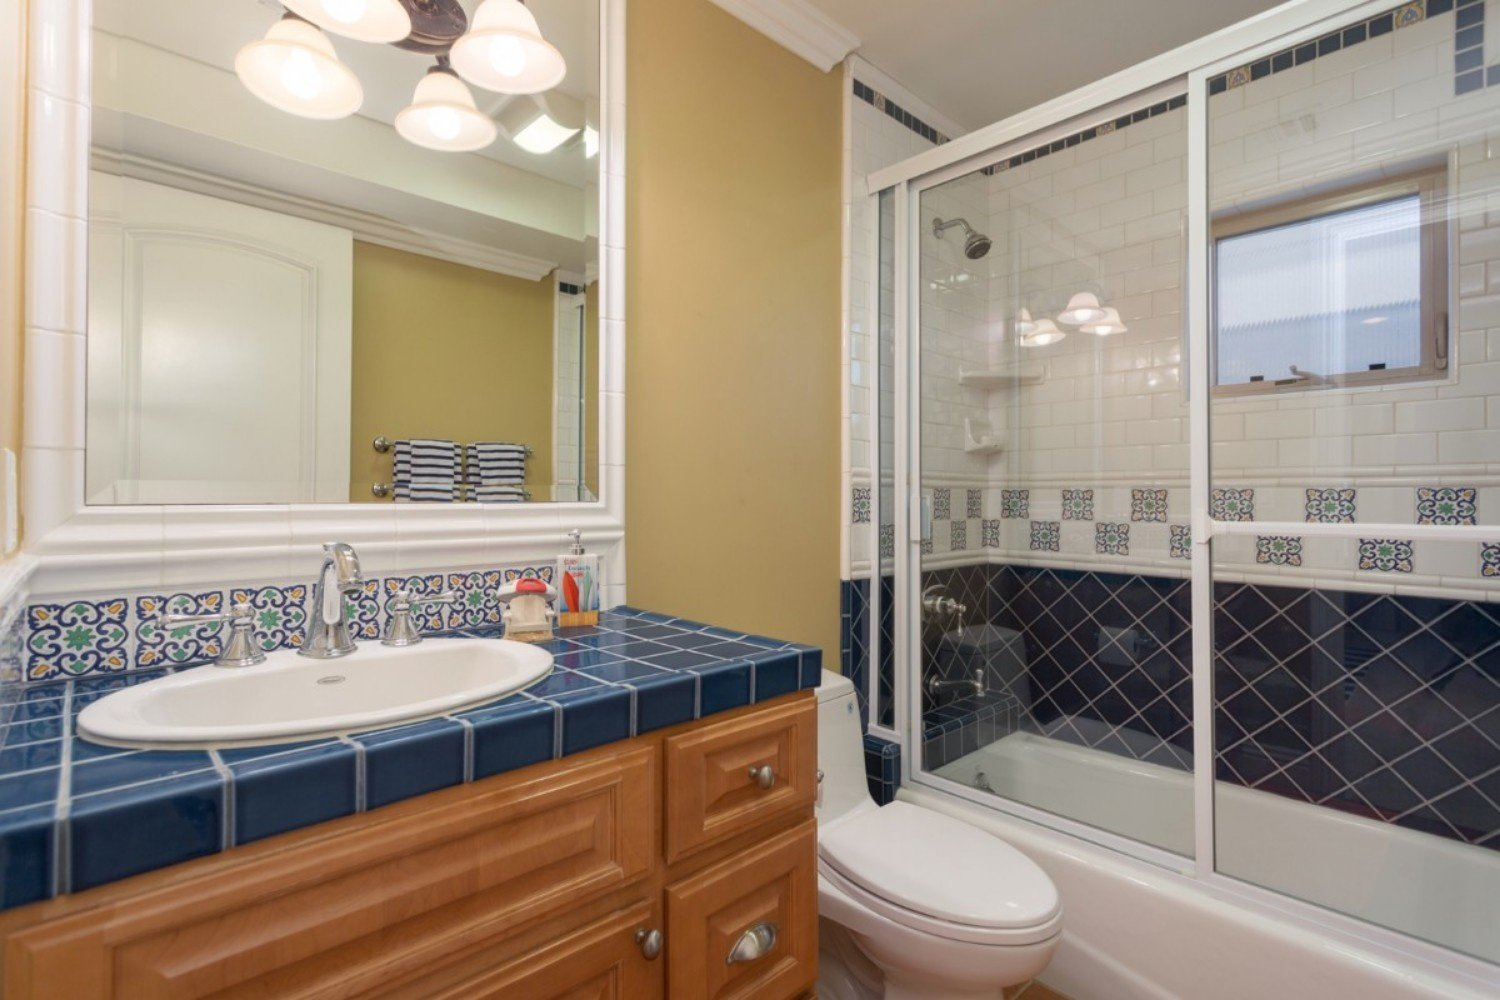 HB Ocean View Townhouse Kids' Bath